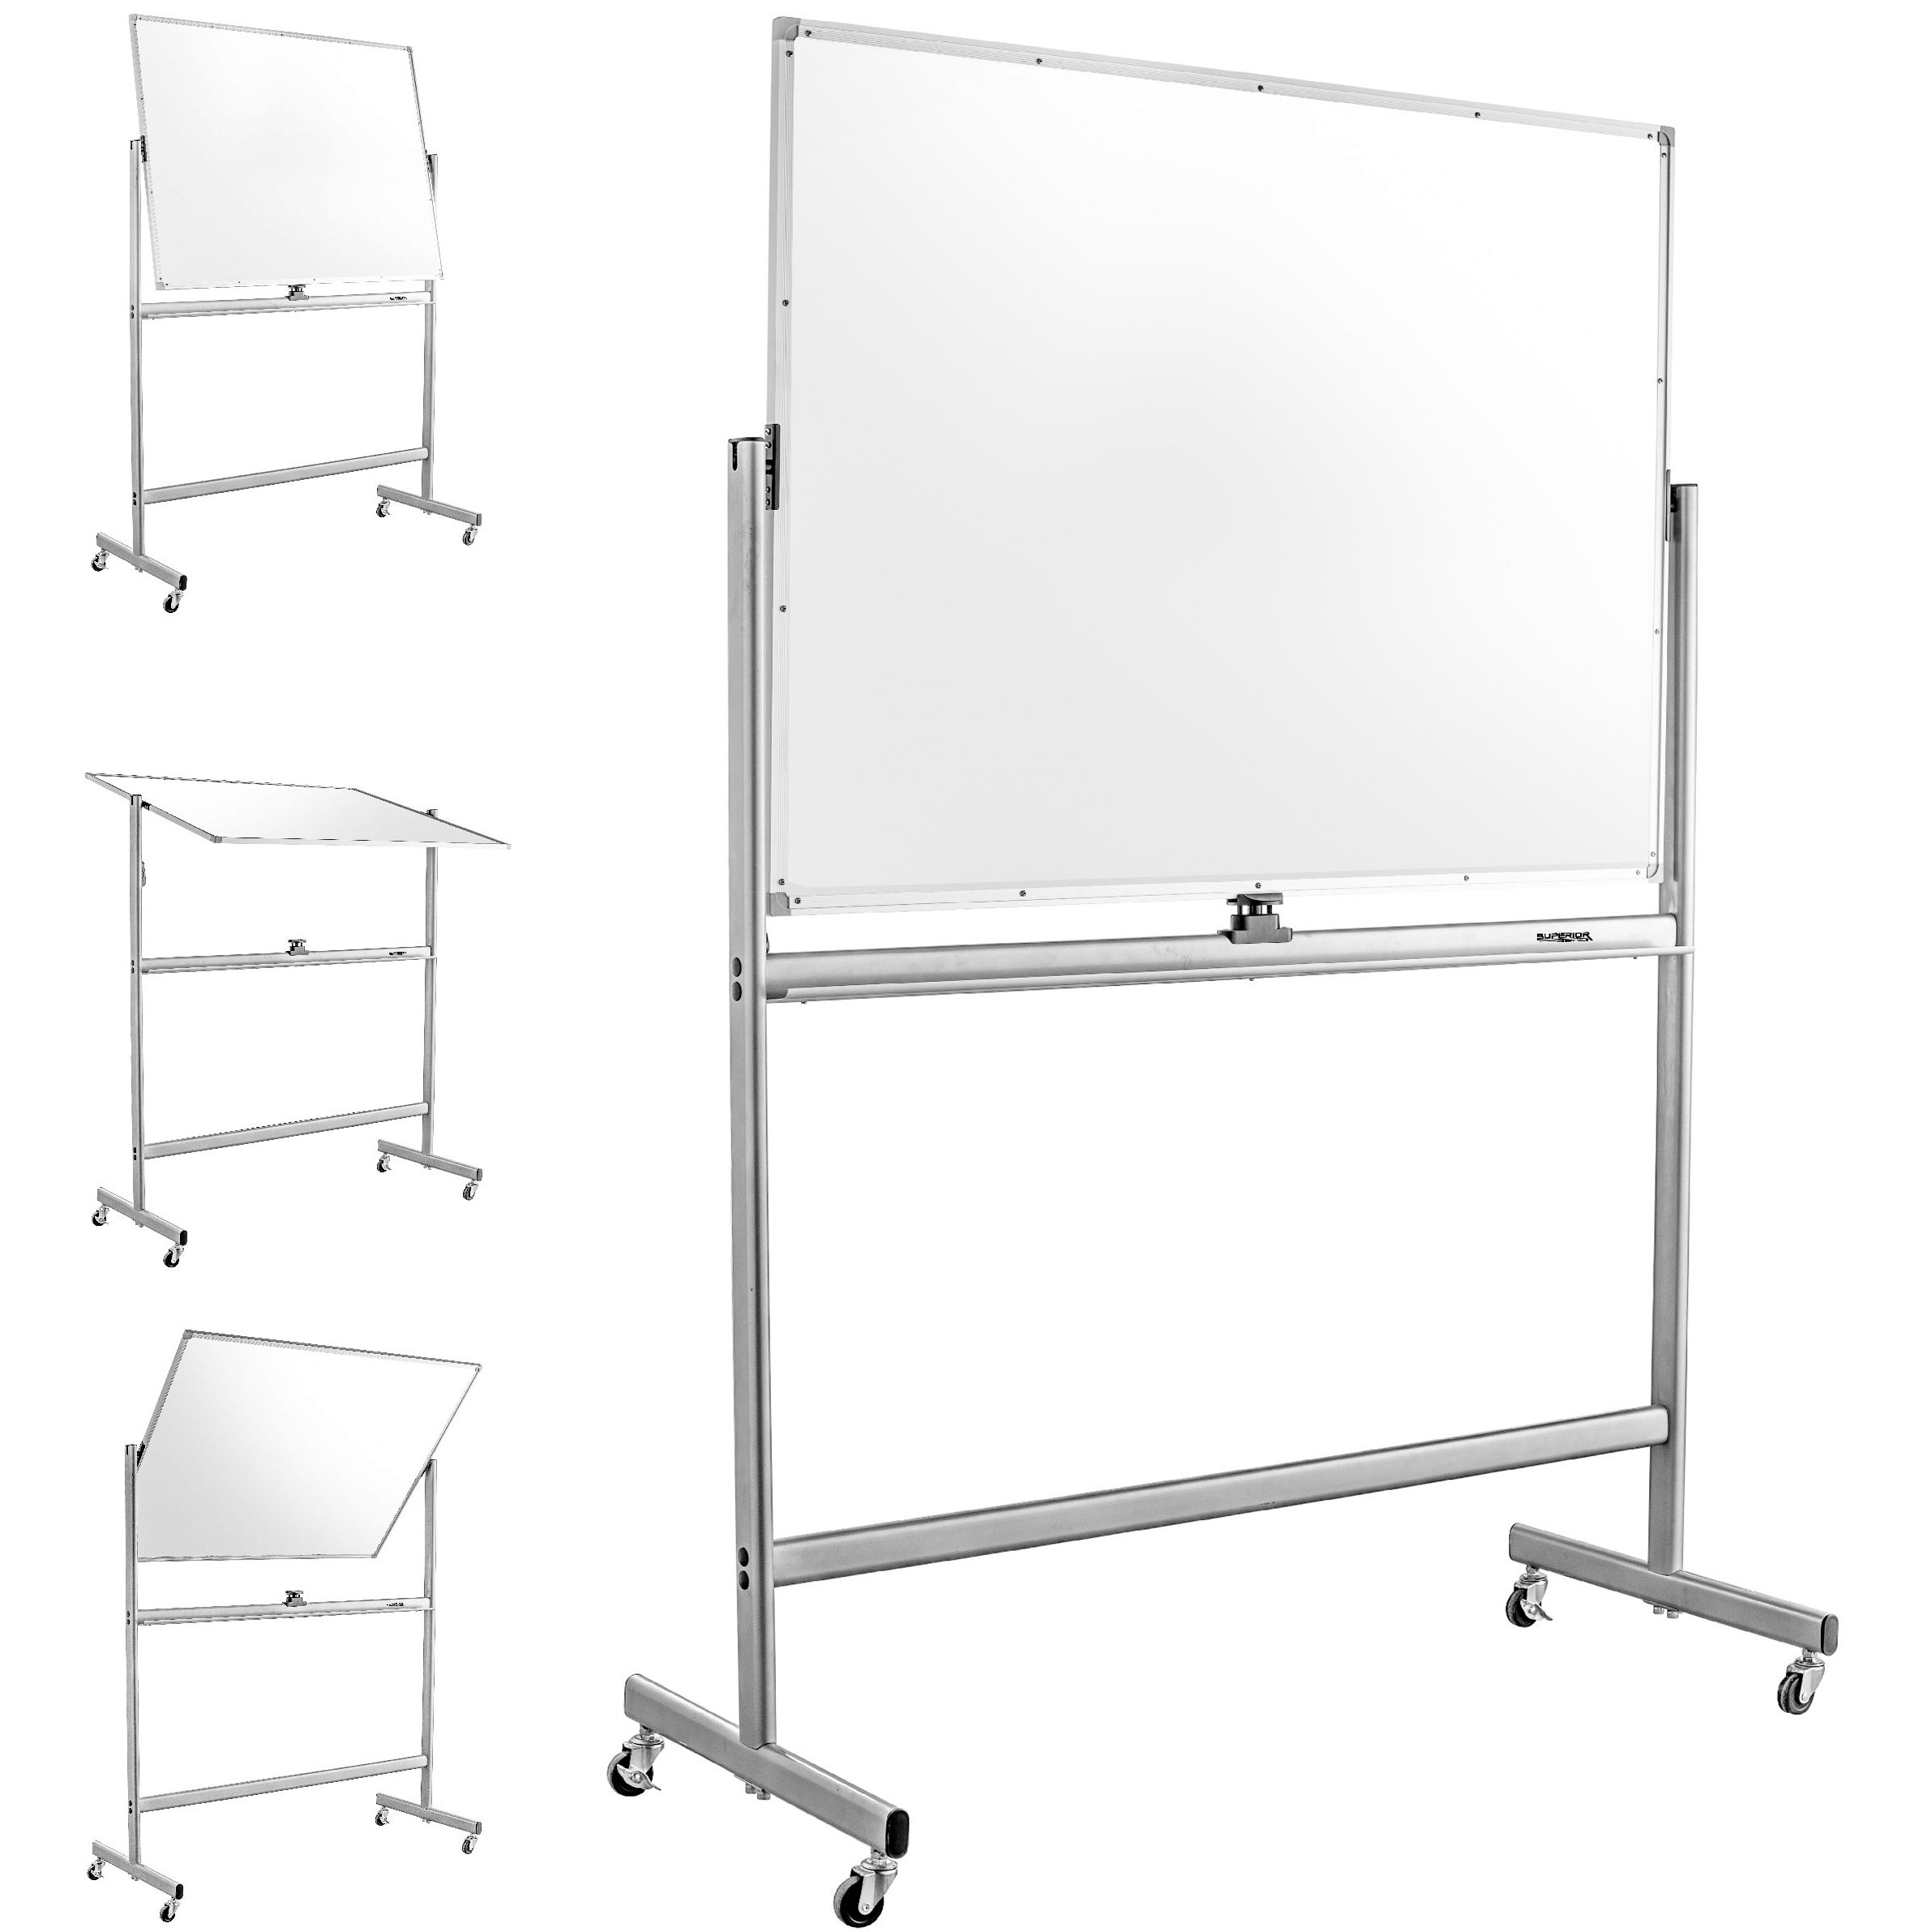 Mobile Dry Erase Magnetic Whiteboard--47''(W) x 36''(H) -- Double Sided with Easy Flip Feature